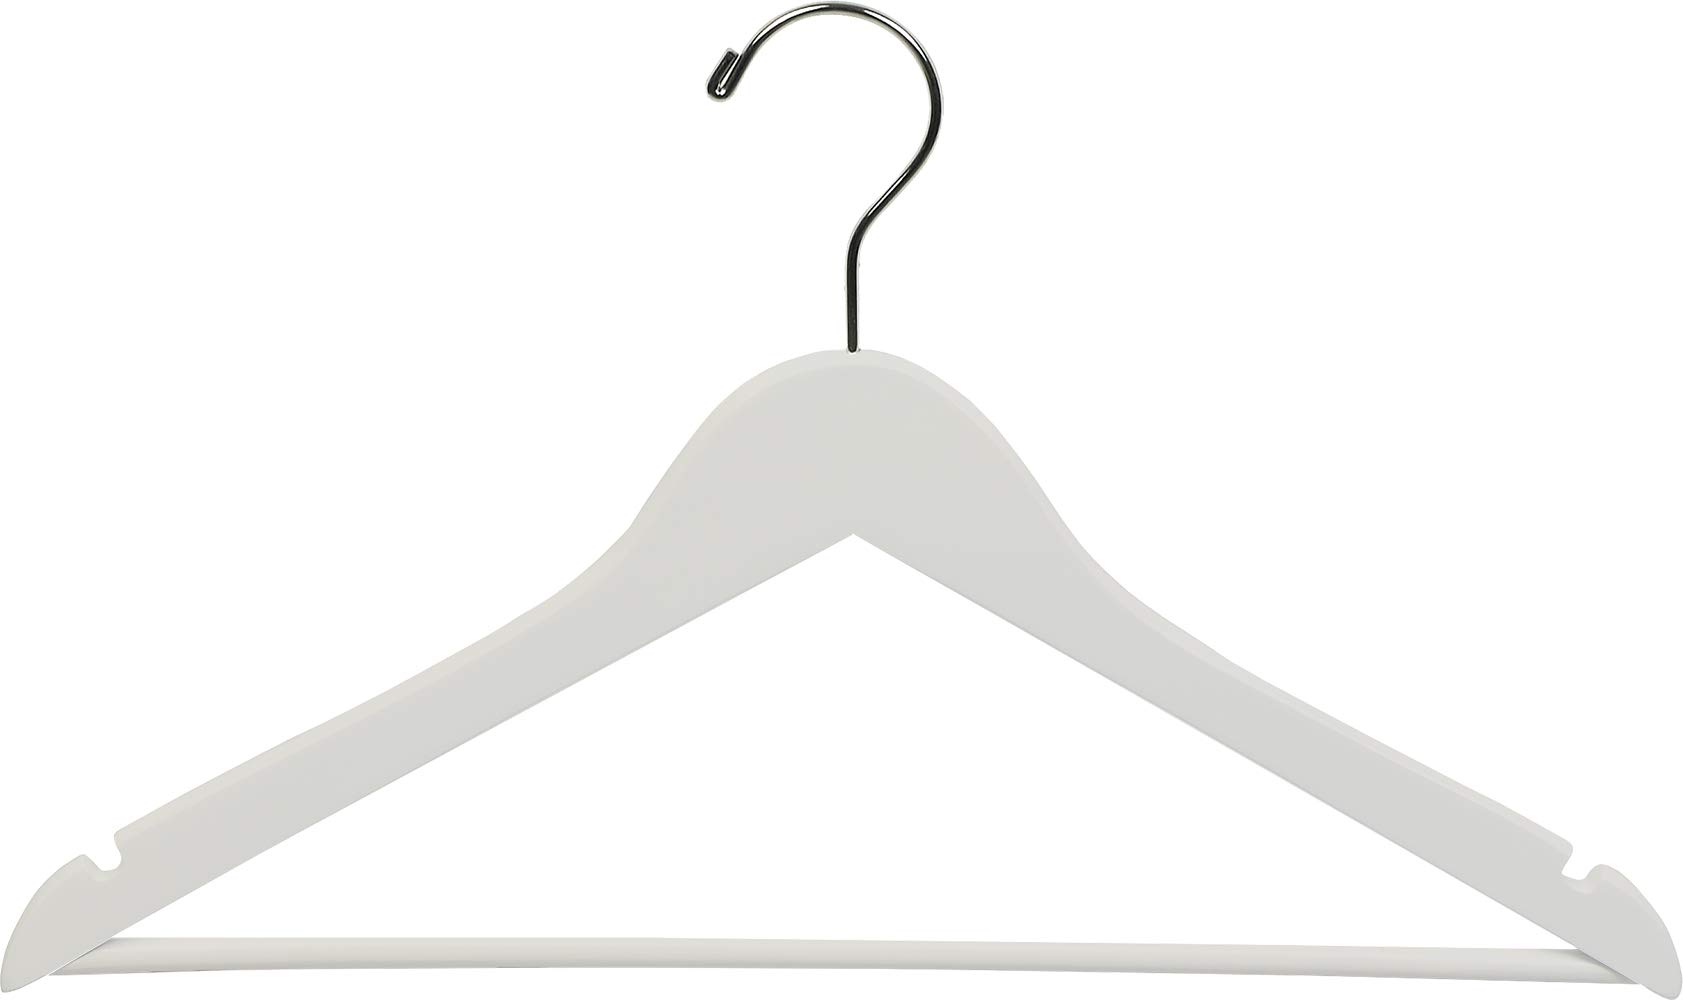 The Great American Hanger Company White Wood Suit Hanger w/Solid Wood Bar, Box of 25 Space Saving 17 Inch Flat Wooden Hangers w/Chrome Swivel Hook & Notches for Shirt Dress or Pants by The Great American Hanger Company